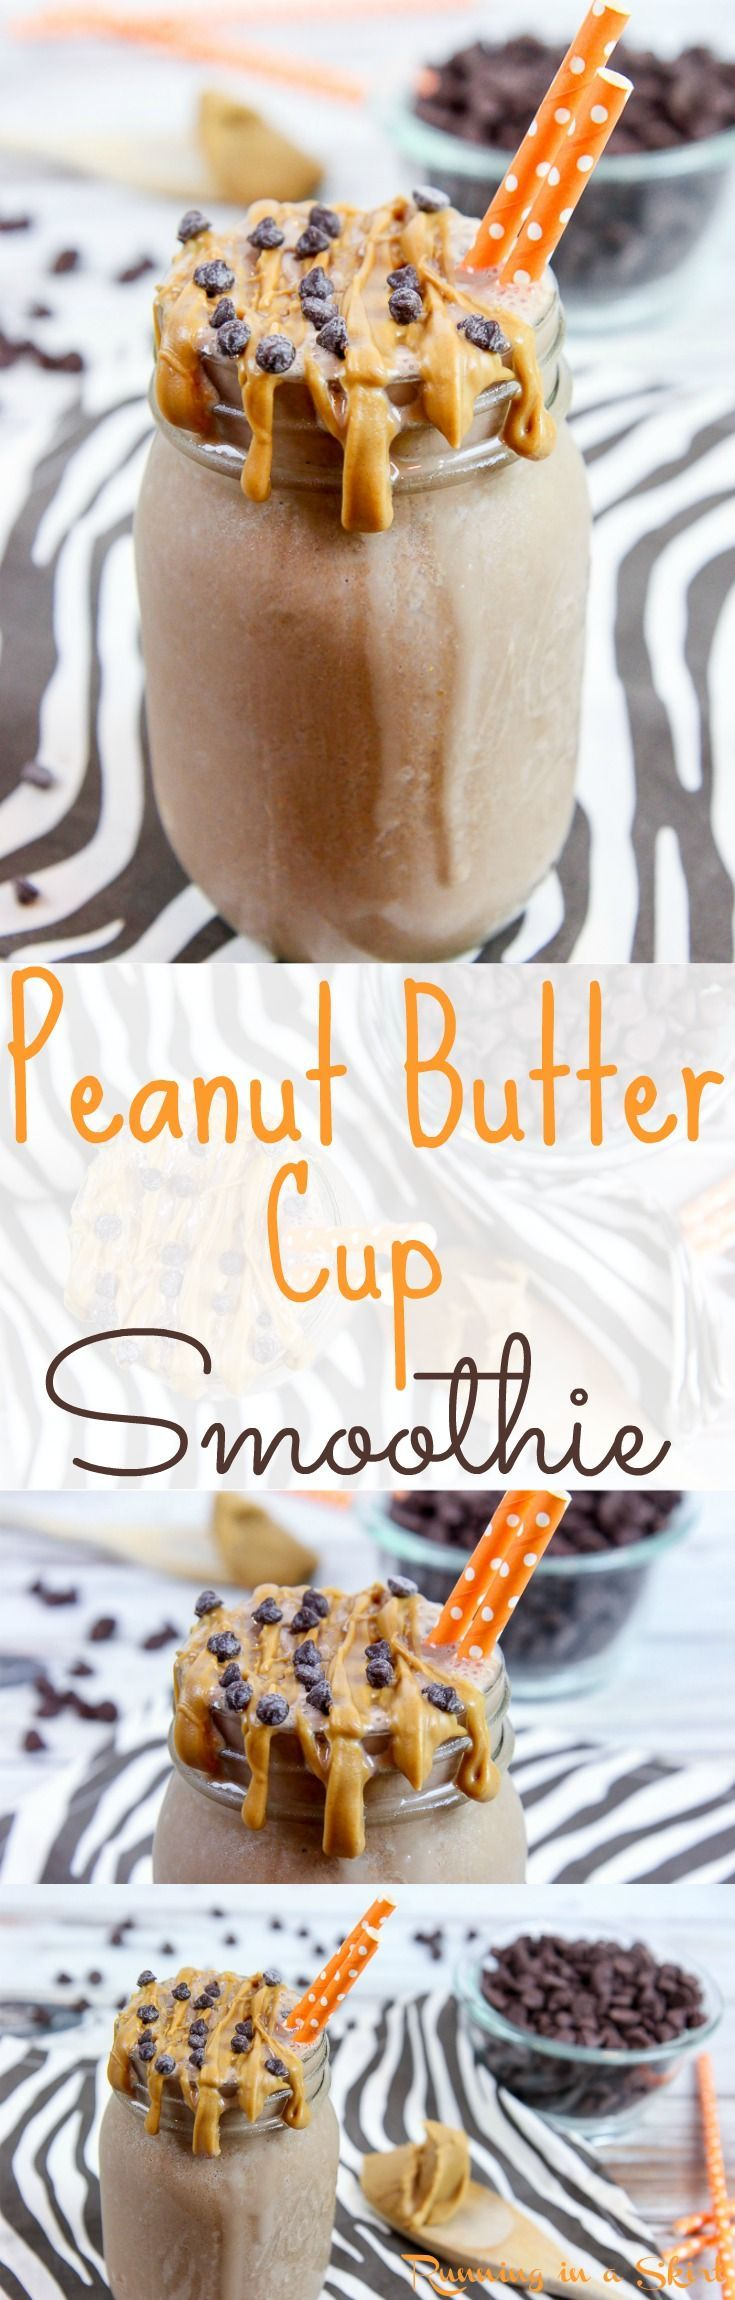 Healthy Peanut Butter Cup Smoothie recipe! Uses frozen banana, cocoa powder, powder peanut butter and ice cubes in the blenders to make a delightful healthy smoothie that is actually good for you! The perfect peanut butter and chocolate combination -- so good! / Running in a Skirt